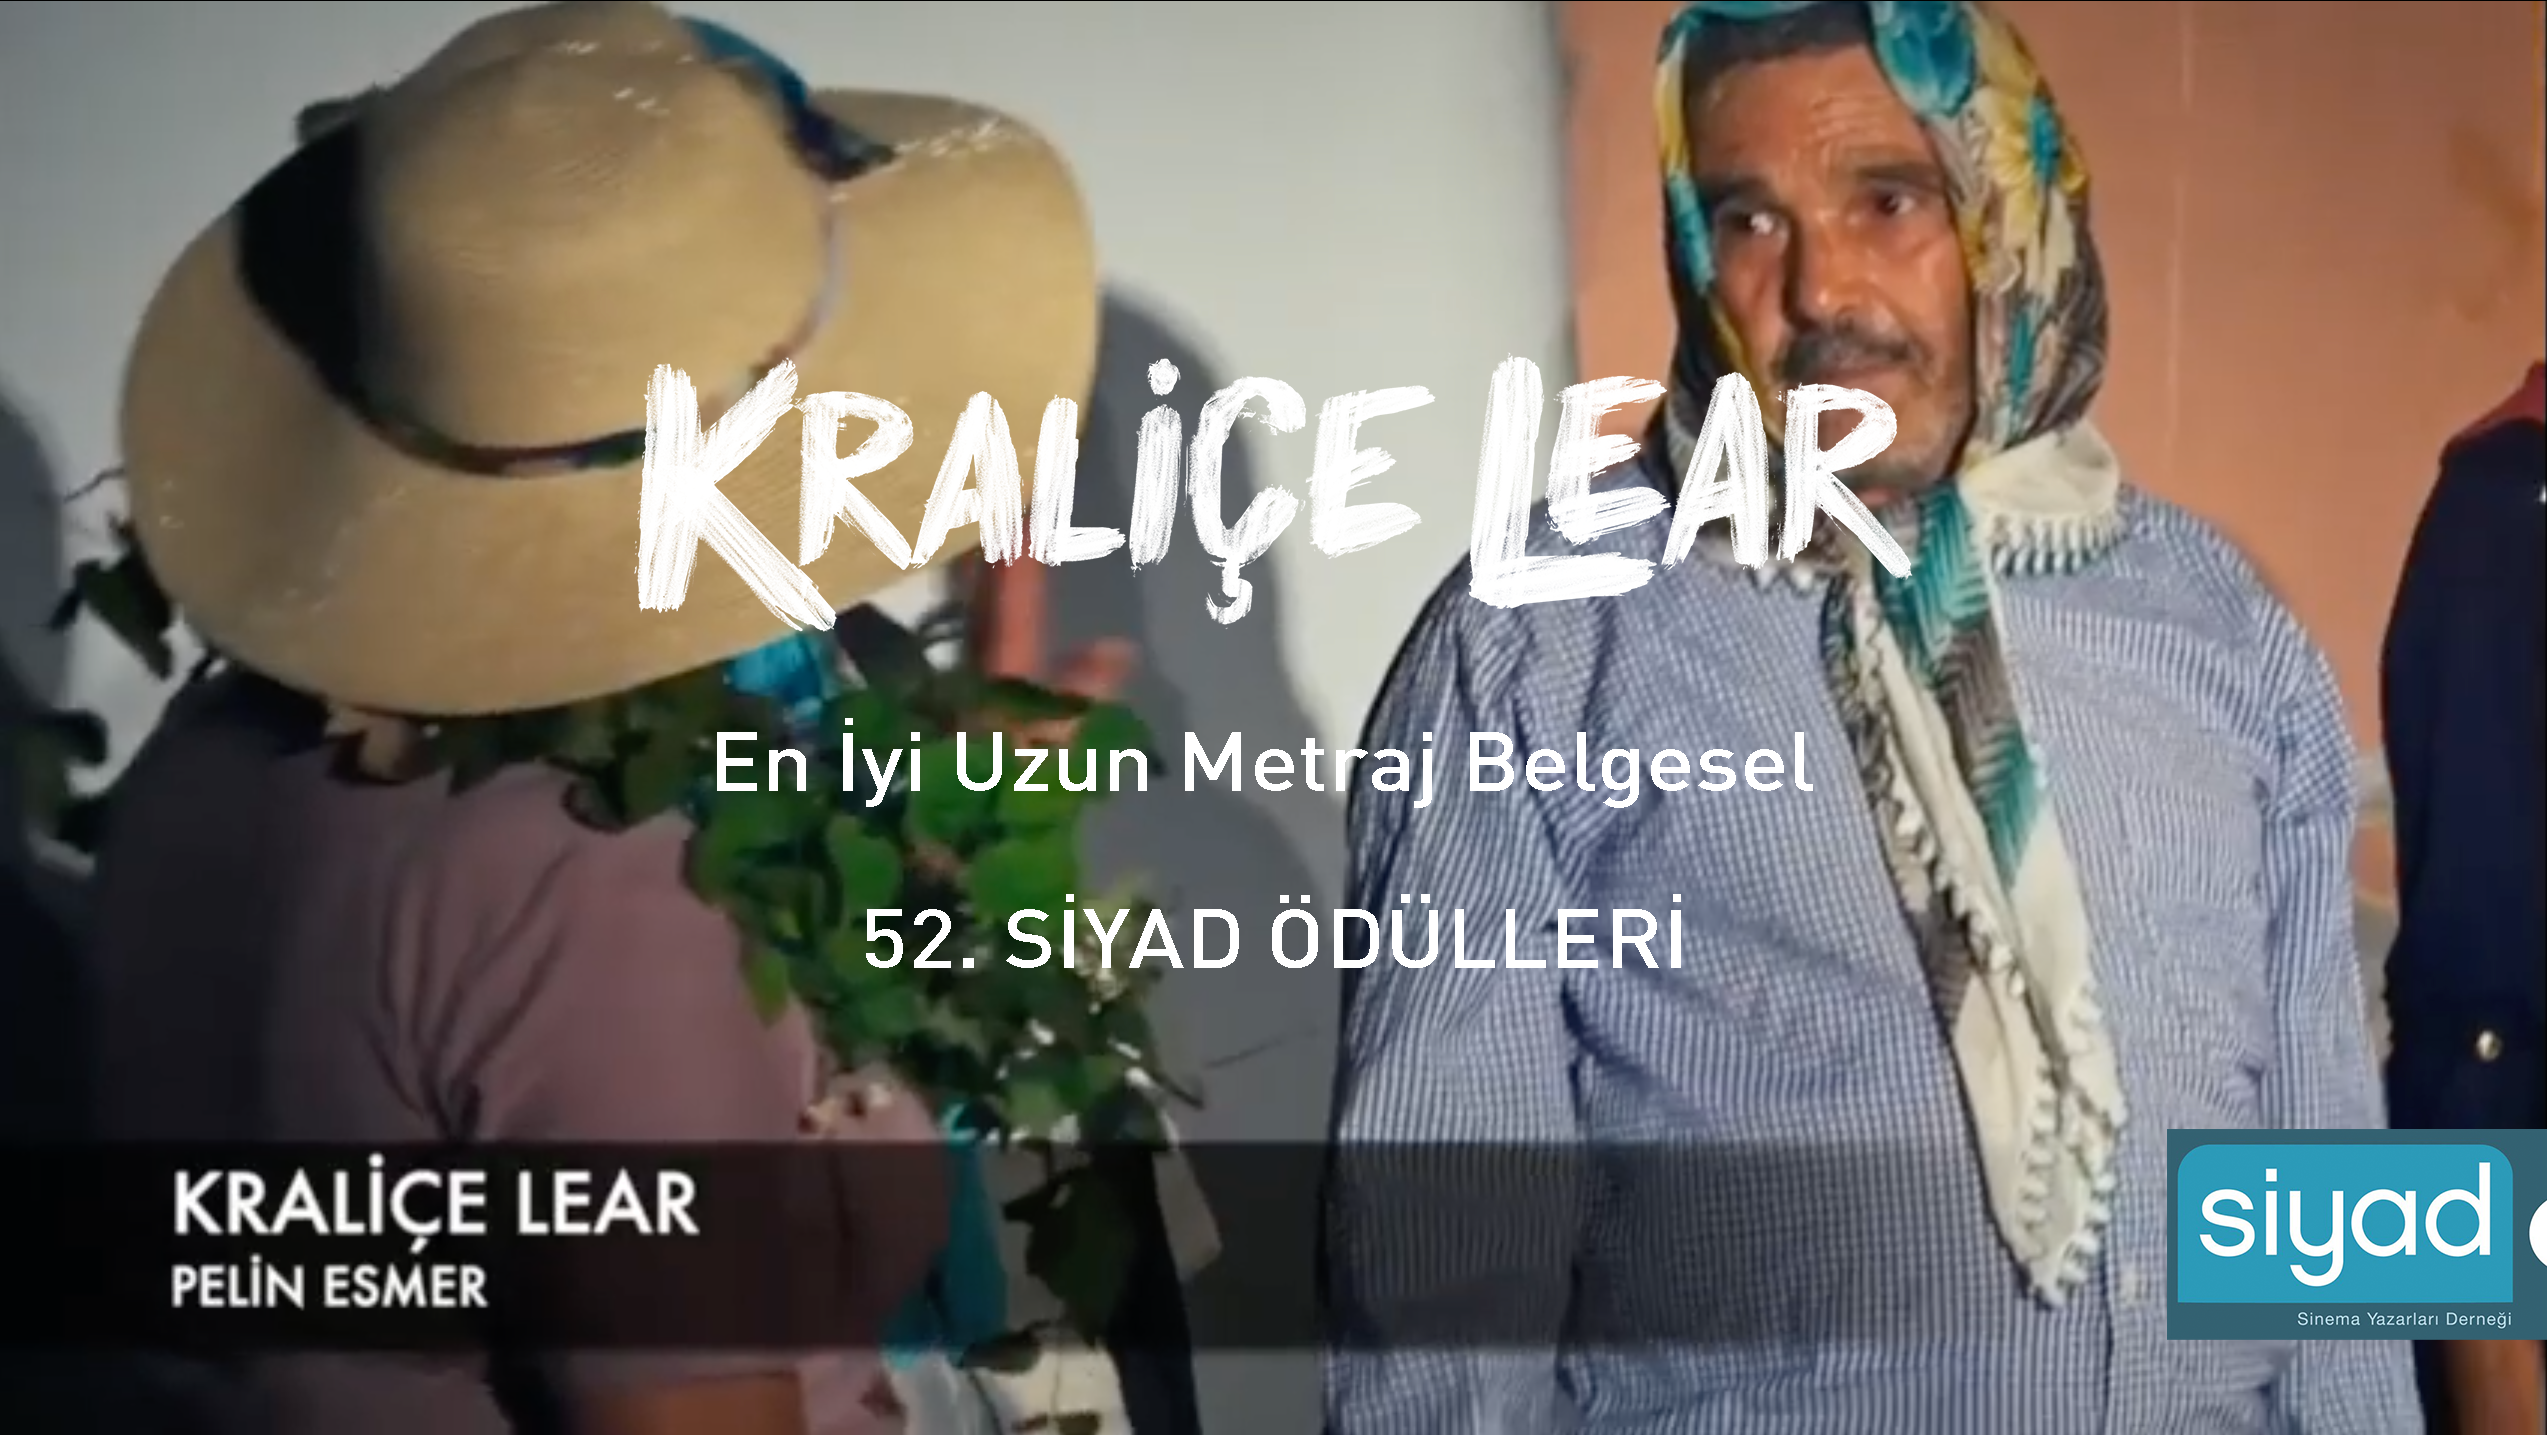 QUEEN LEAR RECEIVES THE BEST FEATURE DOCUMENTARY AWARD FROM SIYAD 2020